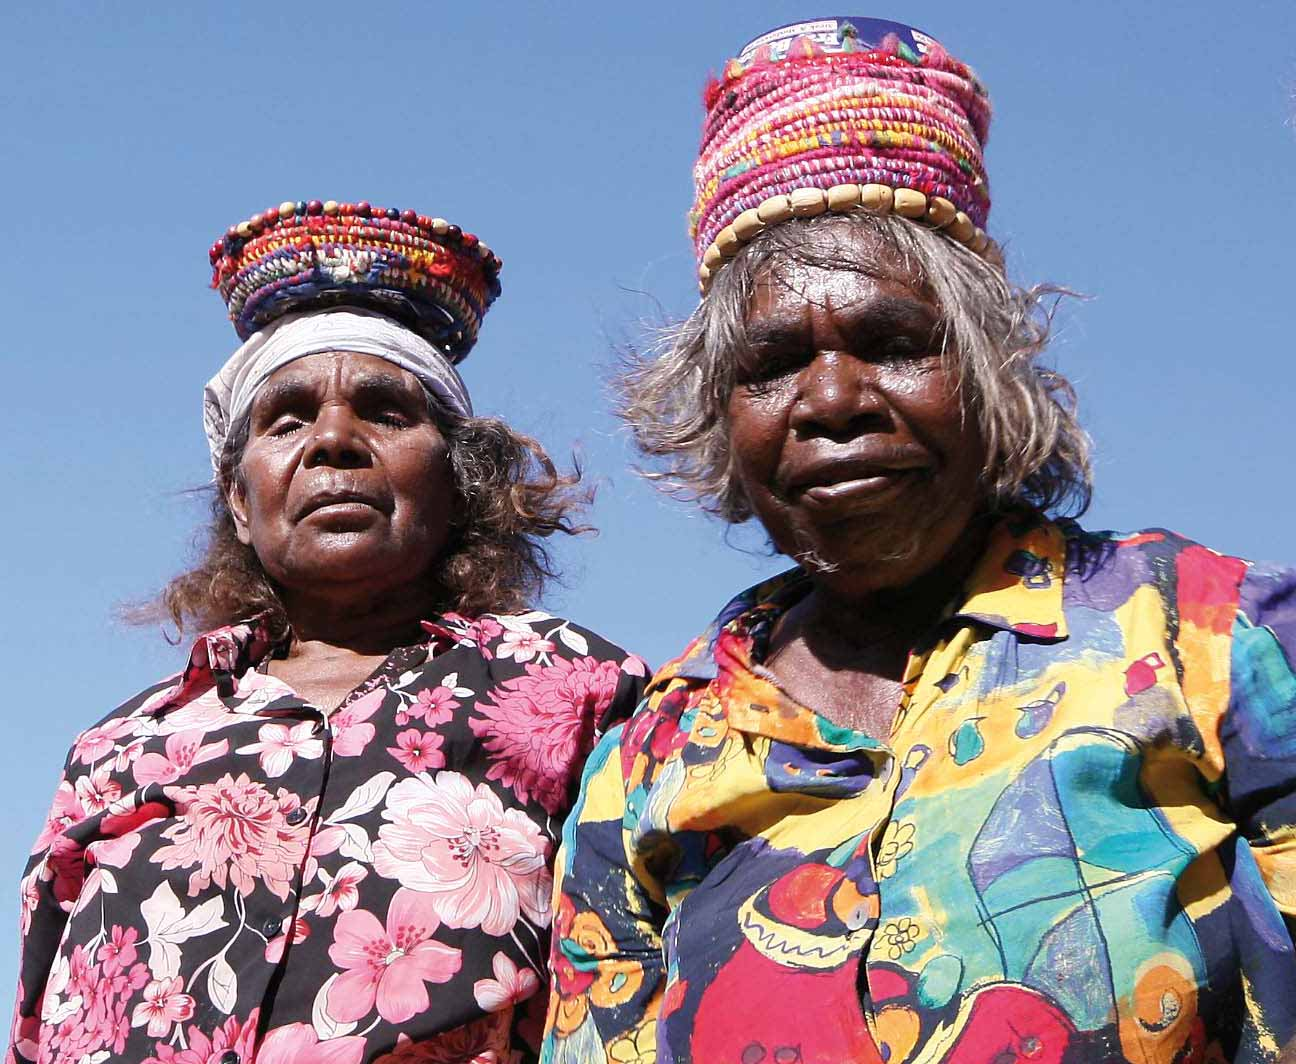 Colour photograph of two women with colourful woven baskets on their heads.